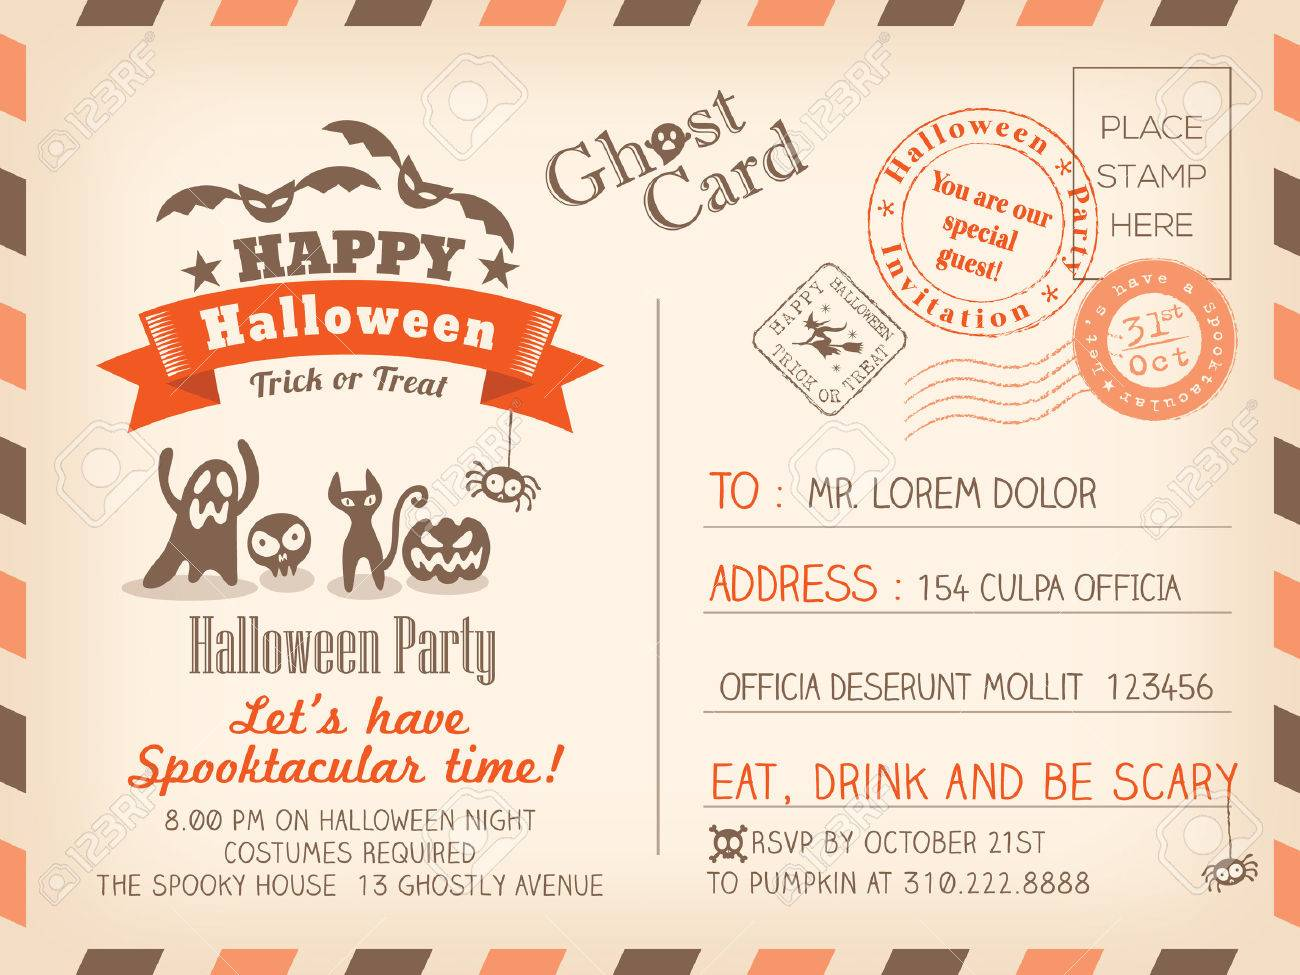 Happy Halloween Vintage Postcard Invitation Background Design Layout Stock Vector